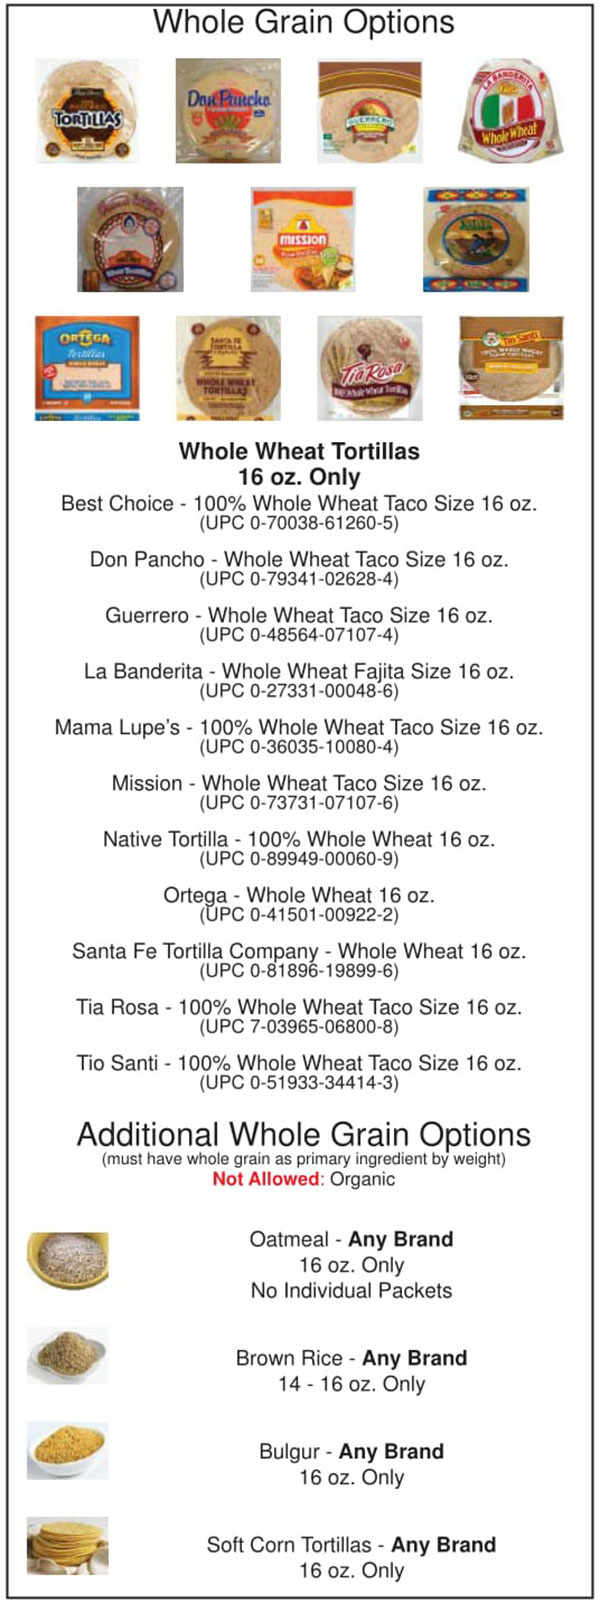 Oklahoma WIC Food List Whole Grain Options and Whole Wheat Tortillas